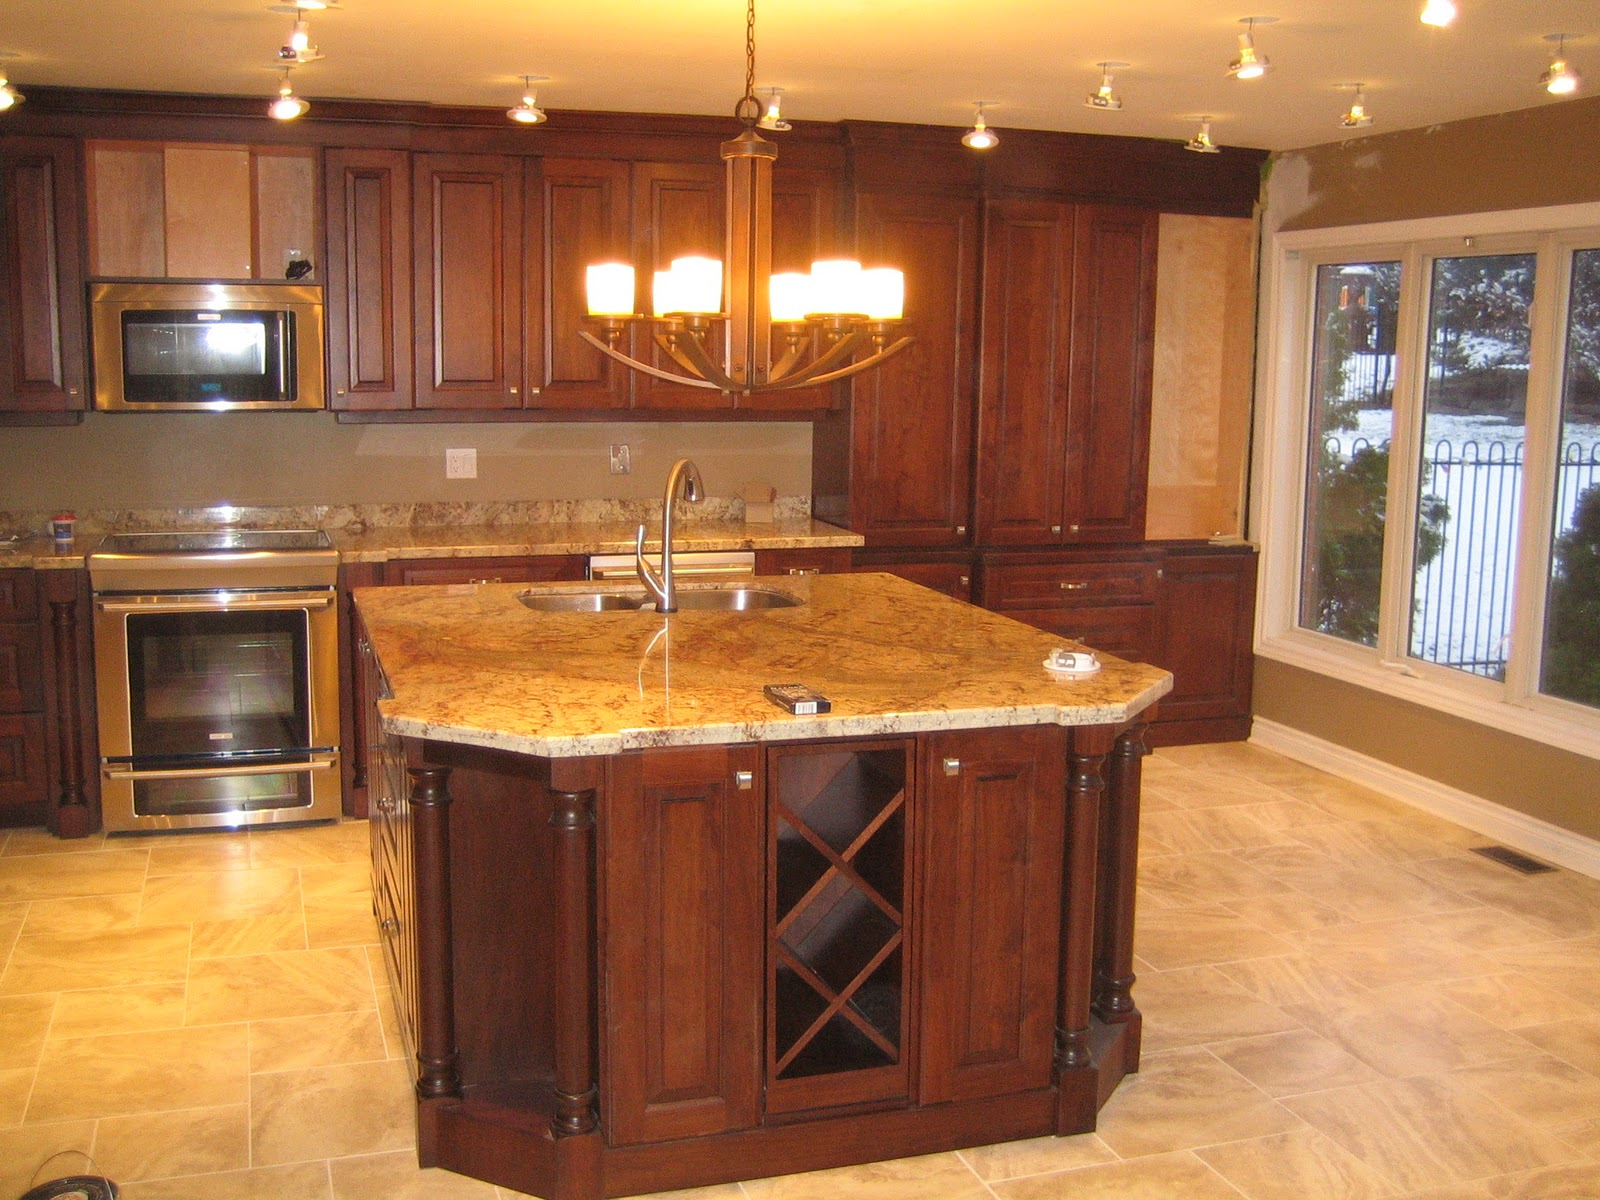 stunning kitchens walnut cabinets | Work of Tom Ablett and Brian Hickling, Please feel free to ...